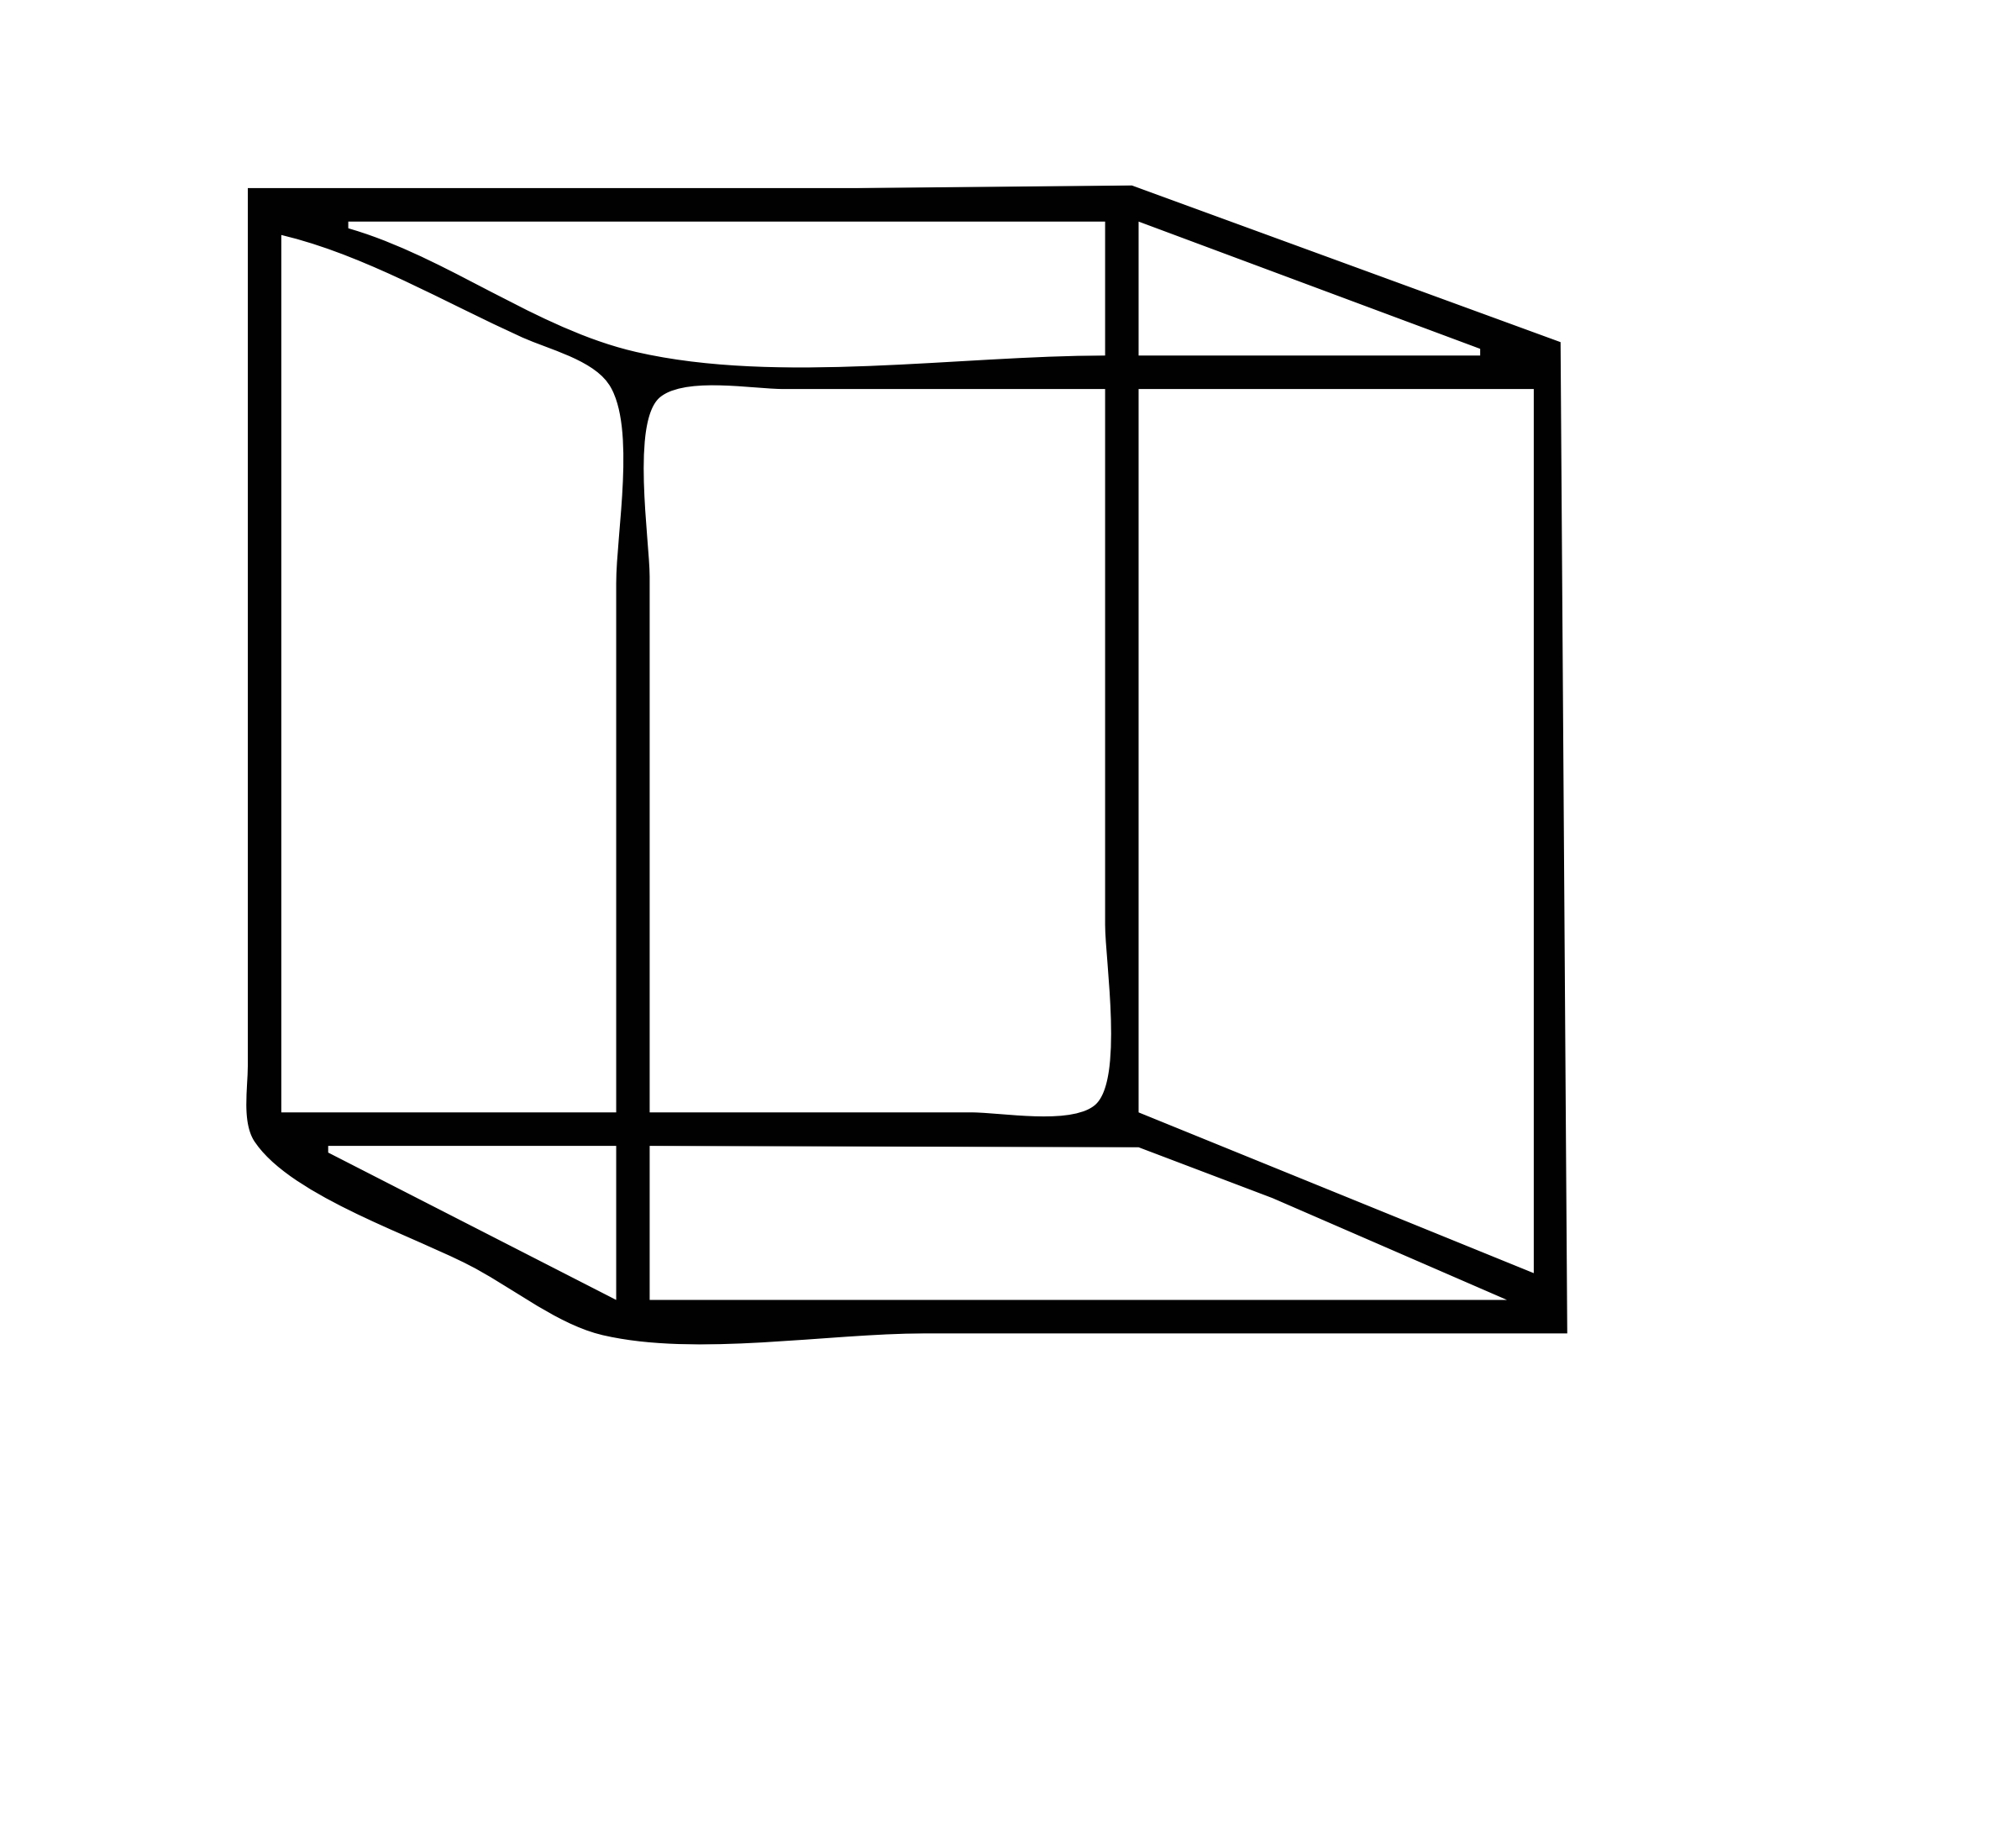 Black and white cube clipart black and white download Cube Clipart Black And White 3 | Clipart Station with regard to Cube ... black and white download